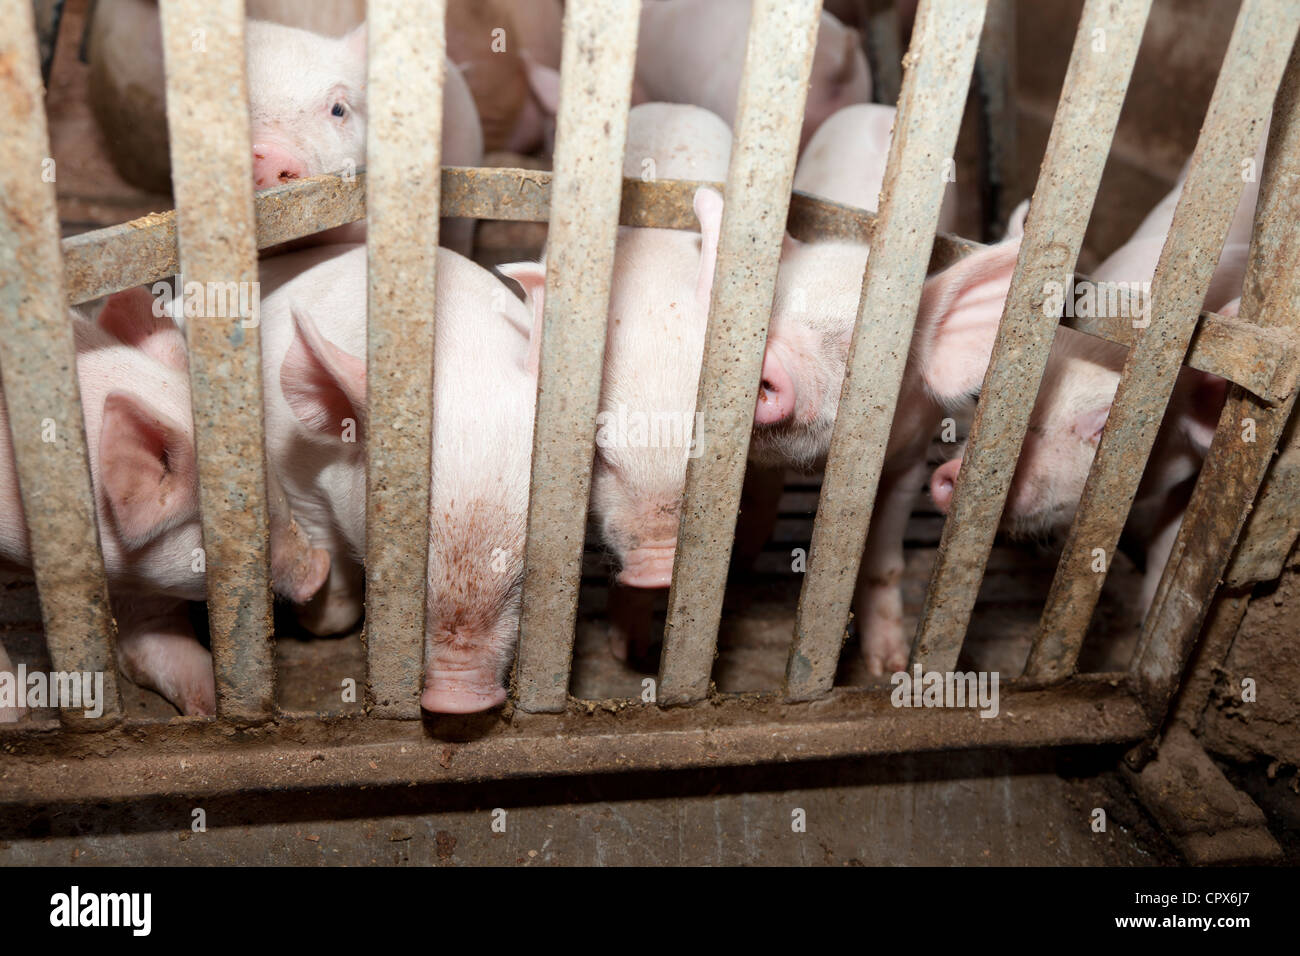 Group of piglets standing in a cage - Stock Image